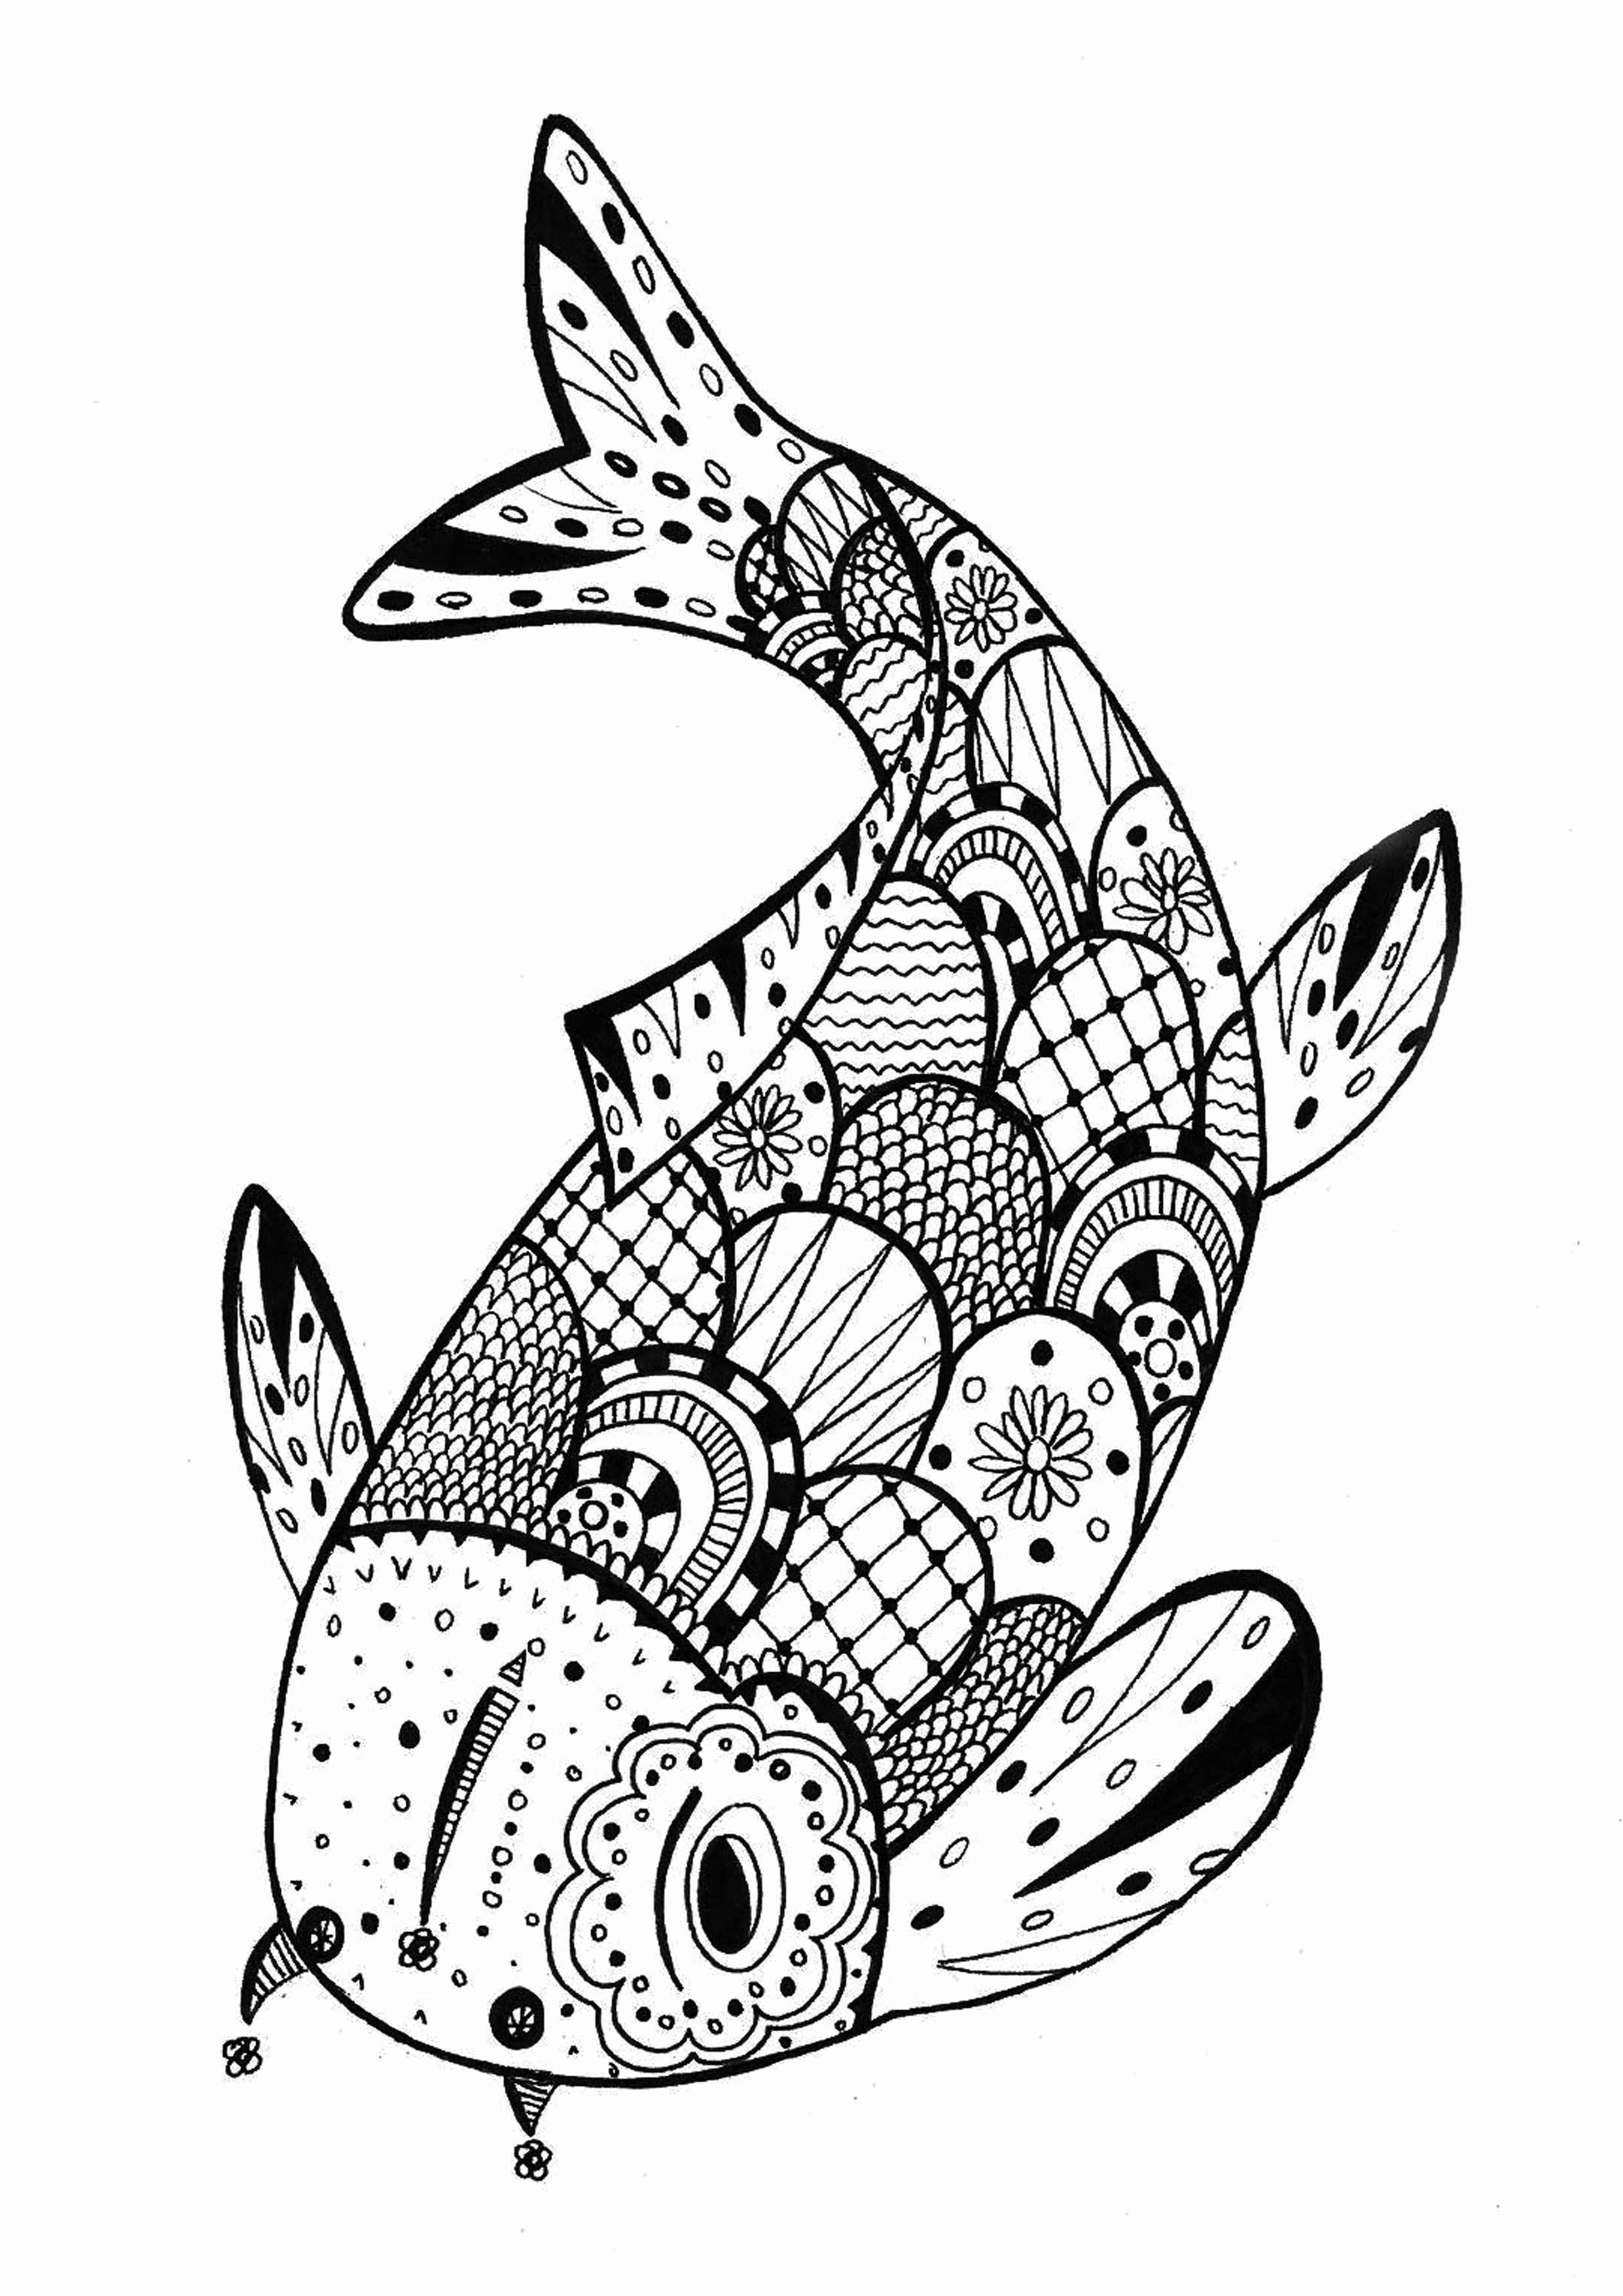 Fish Coloring Pages For Preschoolers Elegant Coloring Tropical Fish Coloring Pages Just Co In 2020 Zoo Animal Coloring Pages Animal Coloring Books Whale Coloring Pages